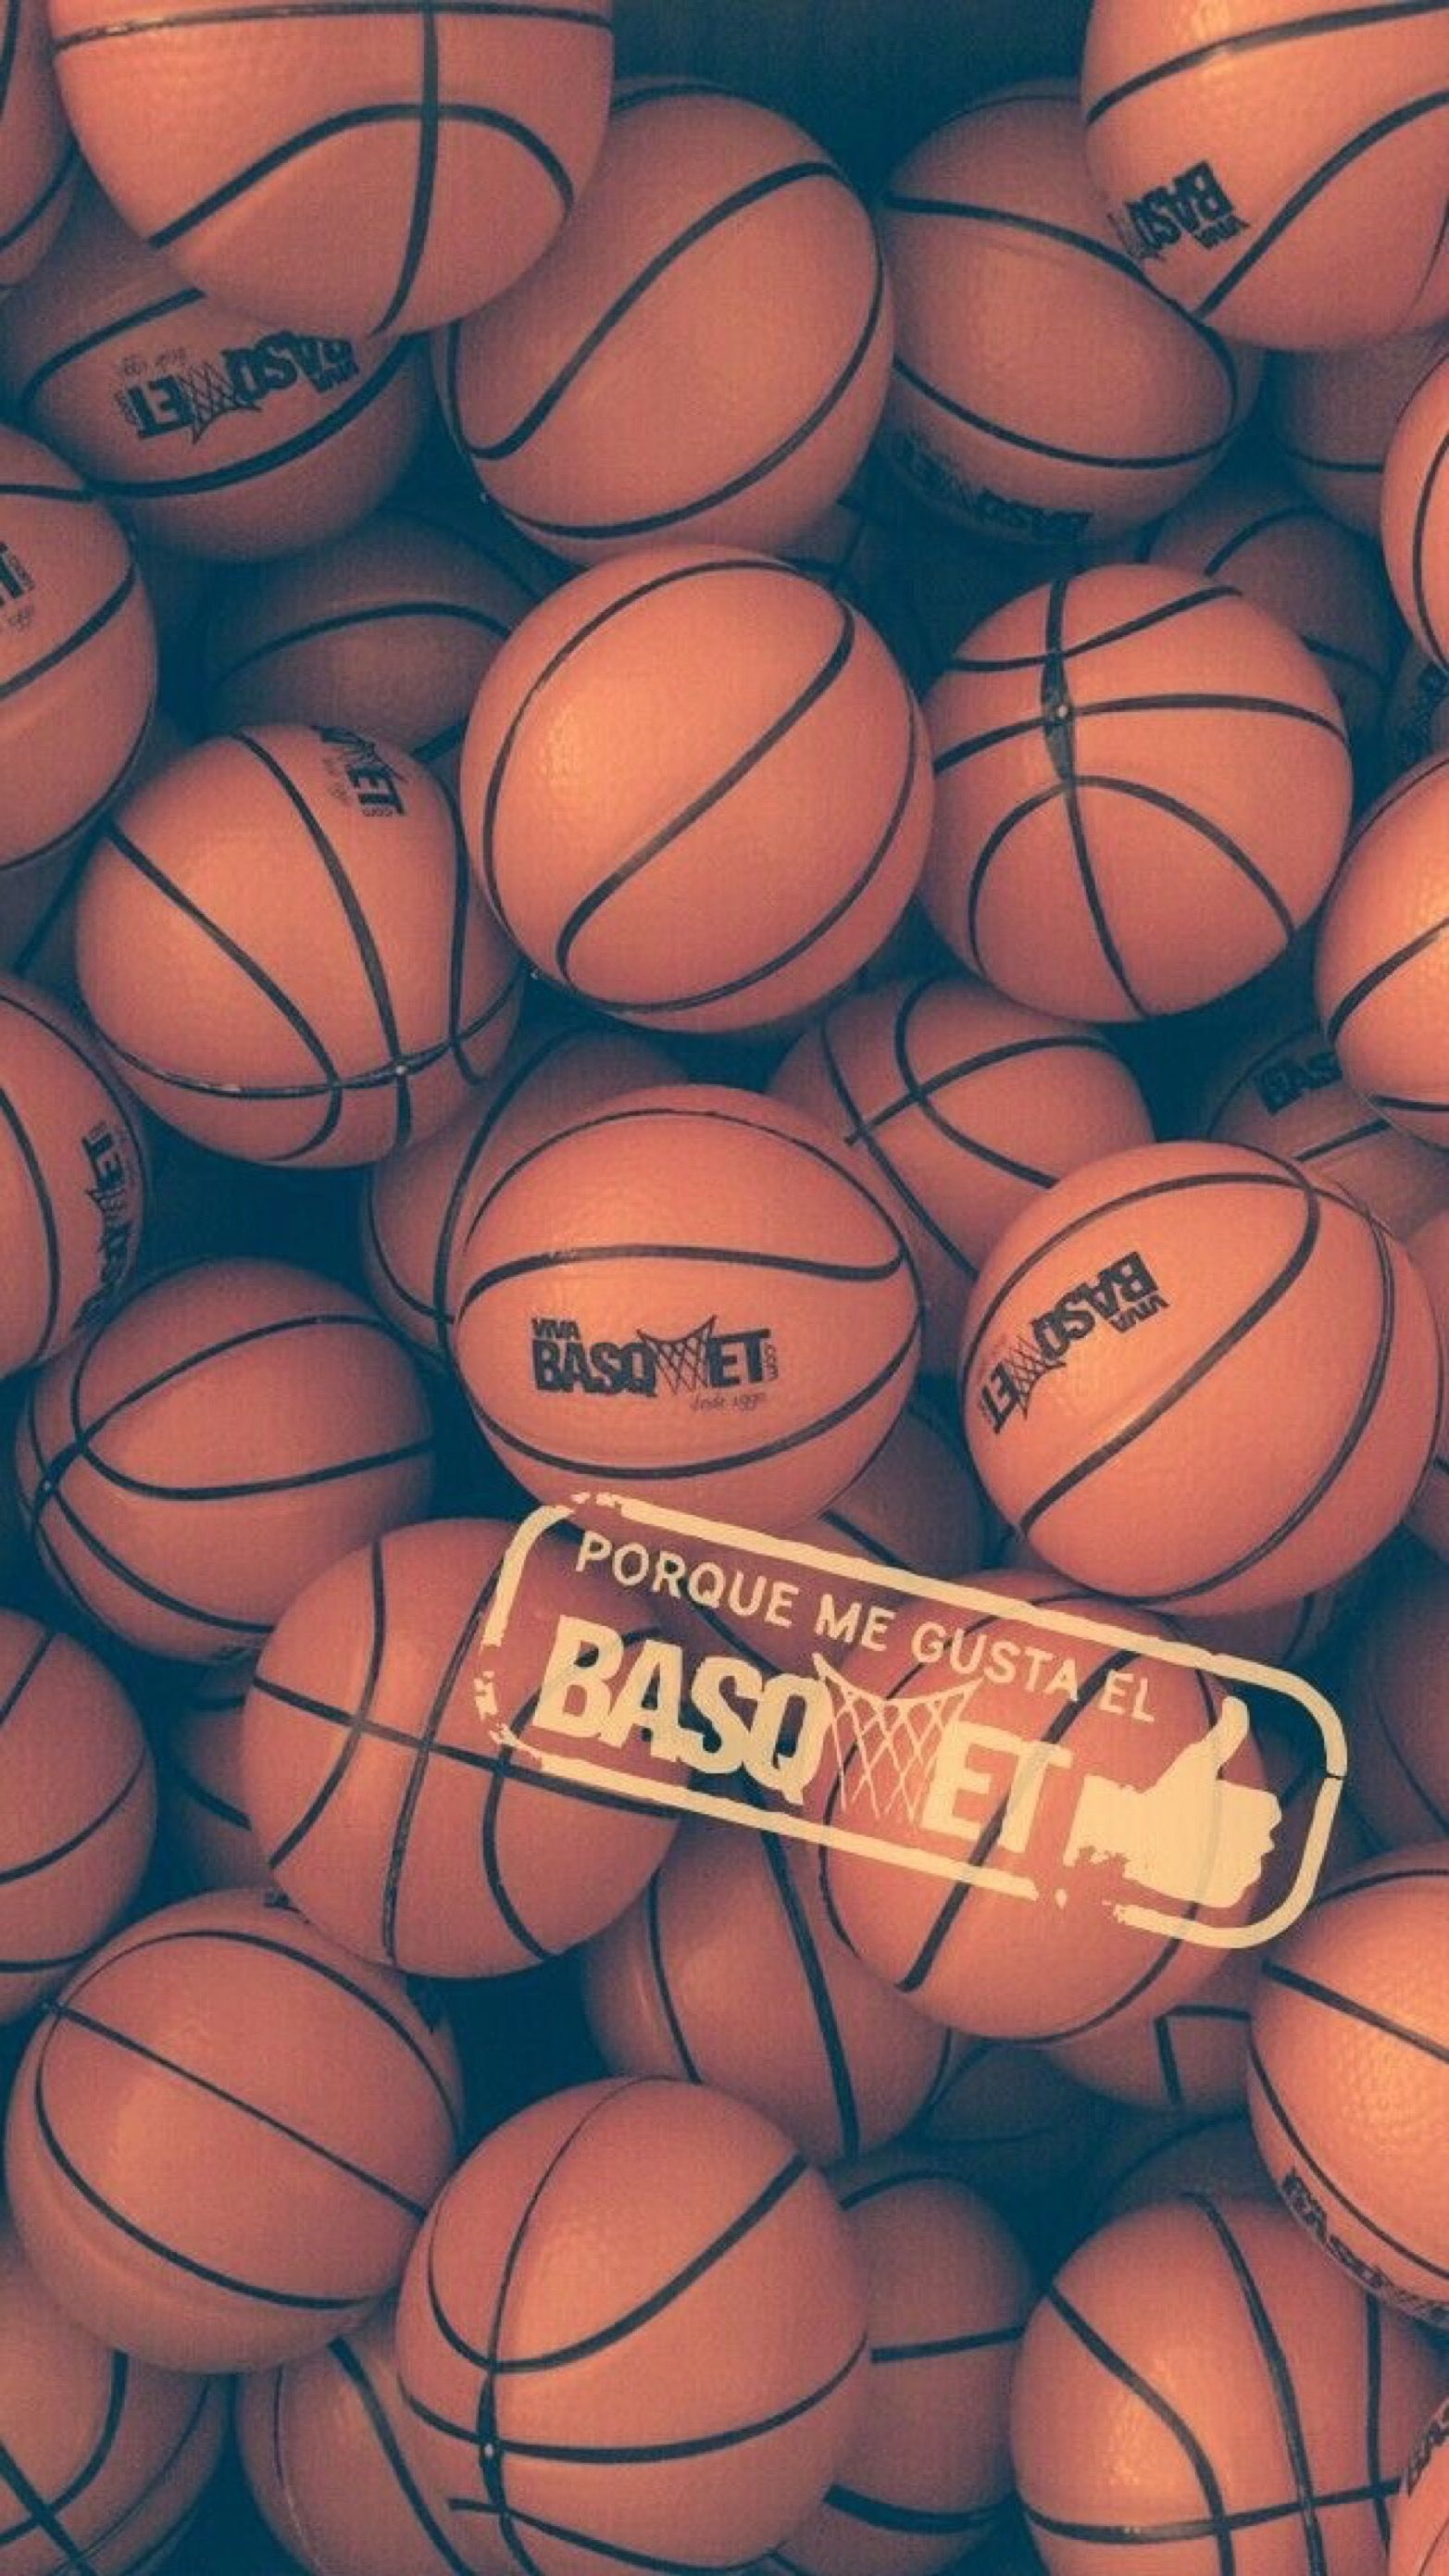 Basketball wallpaper - Earl Blog in 2020 | Basketball wallpaper Basketball  photography Cool basketball wallpapers